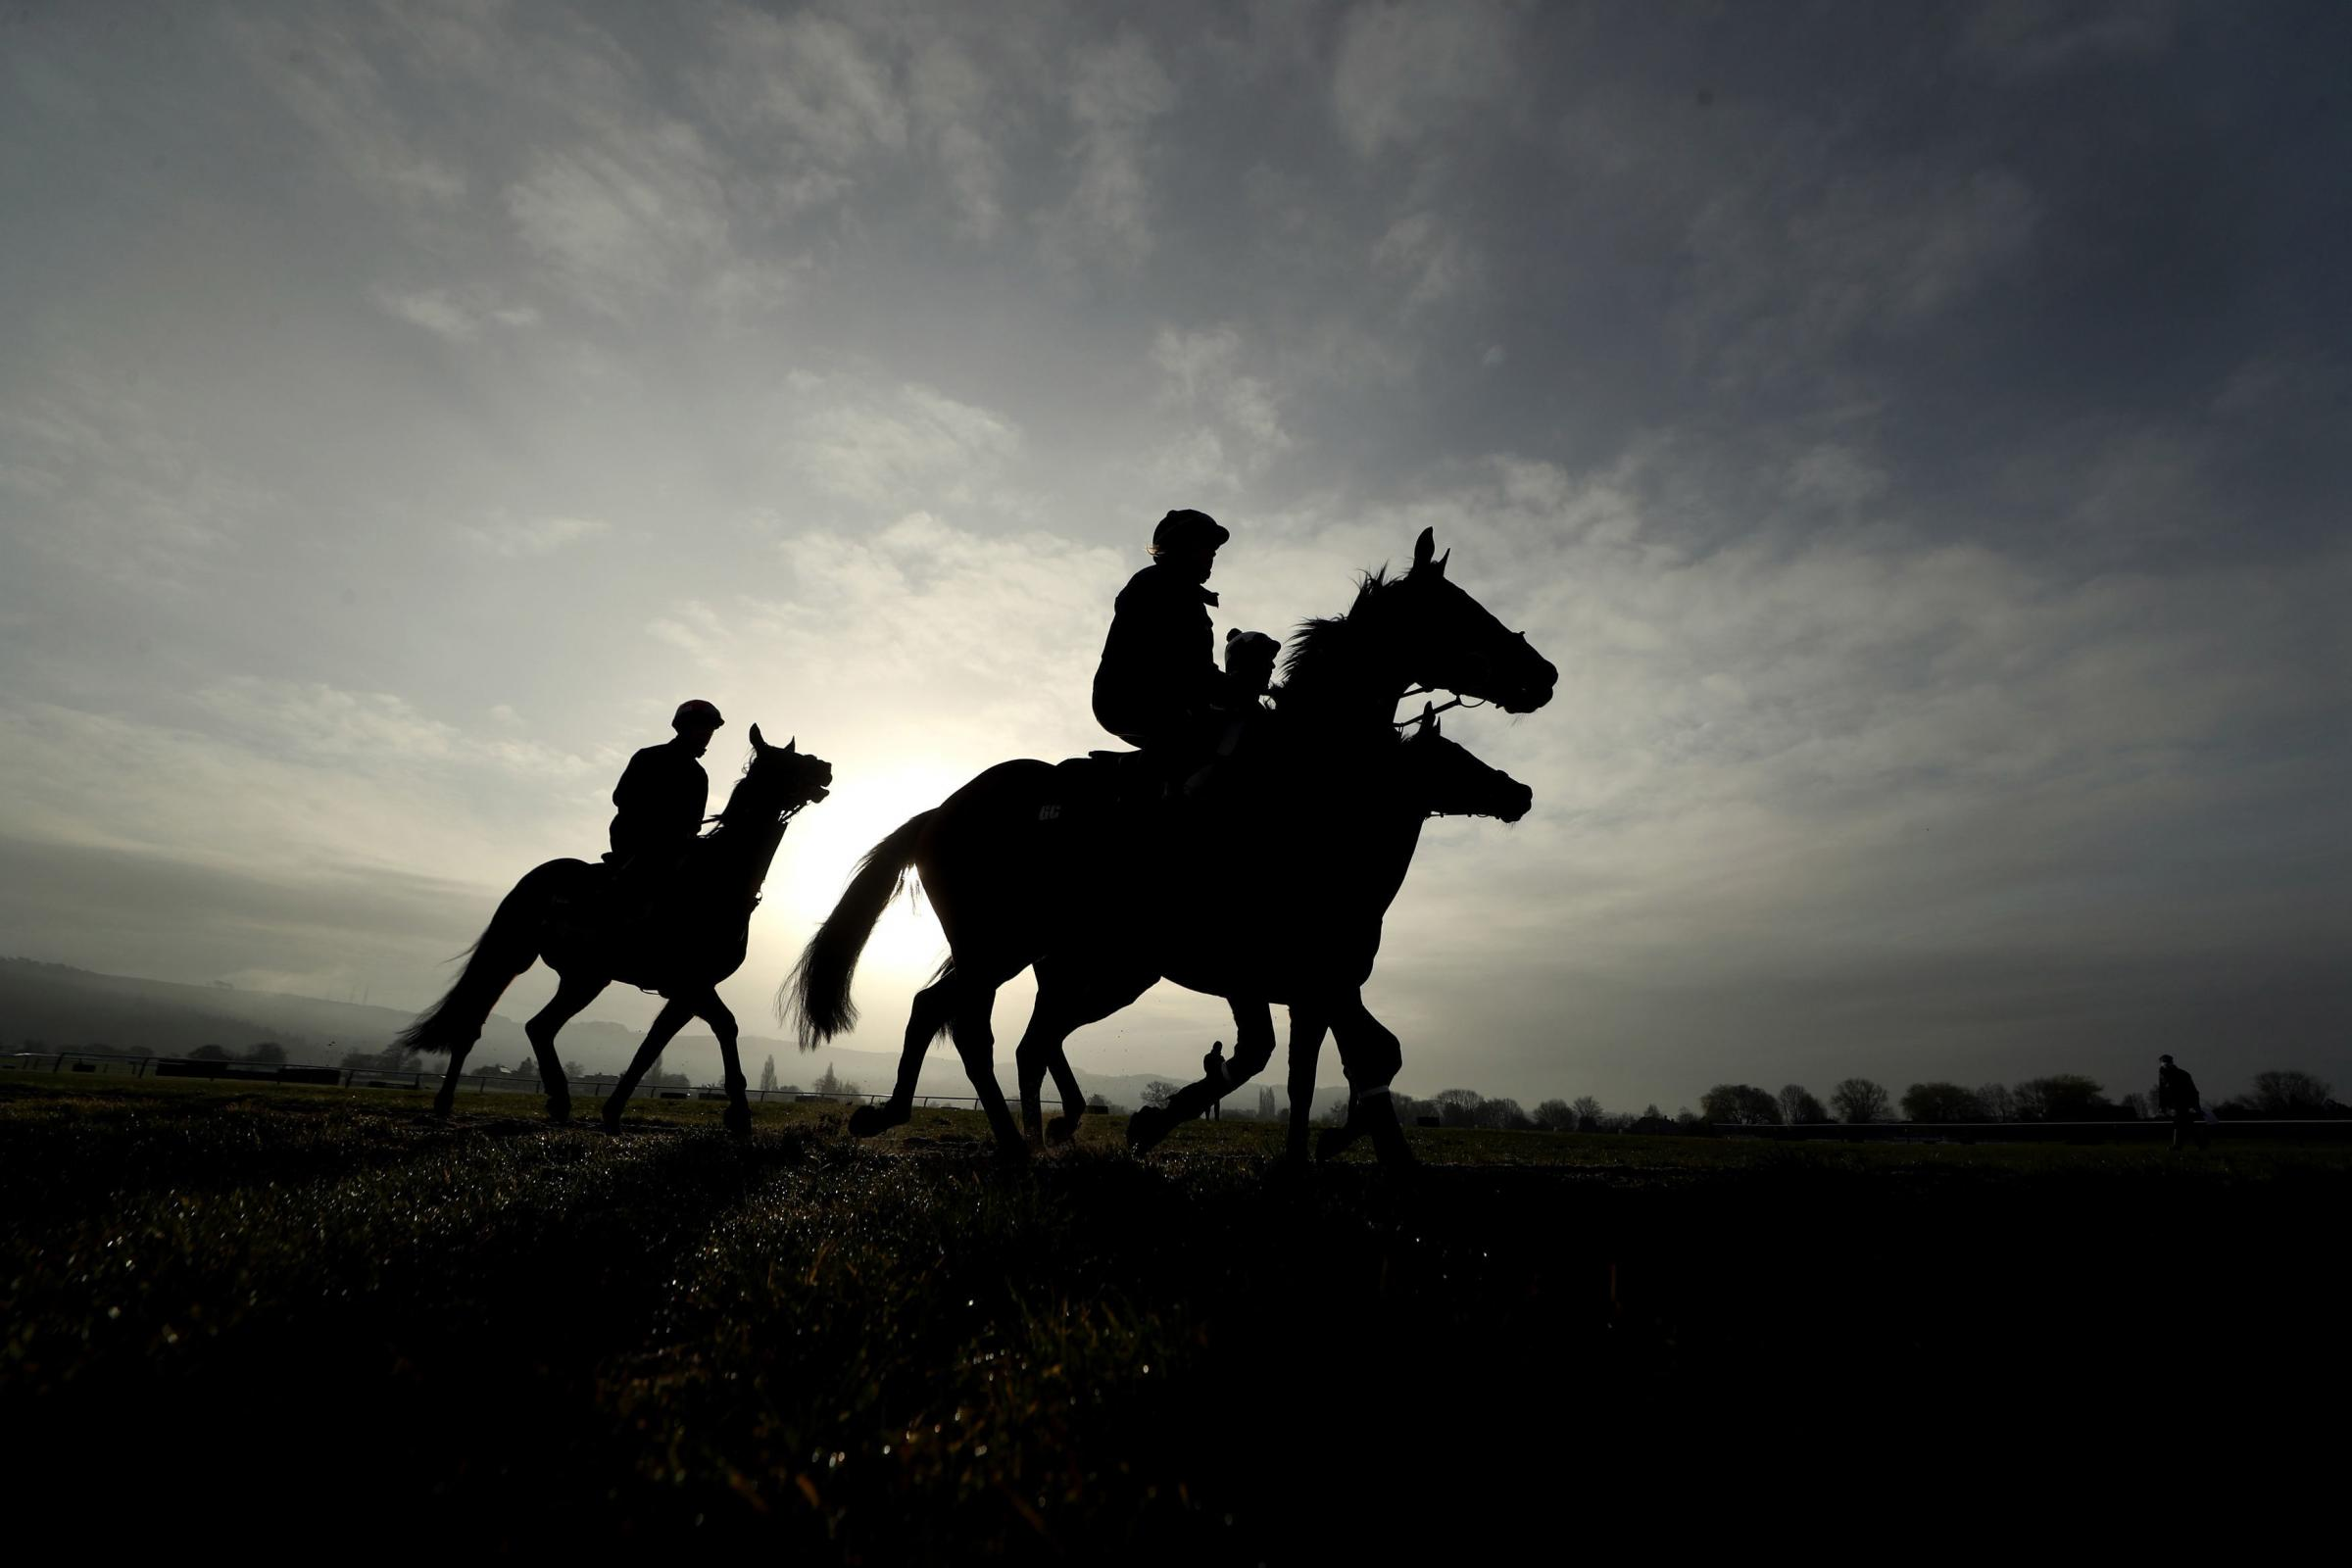 Horses trained by Henry de Bromhead on the gallops ahead of day three of the Cheltenham Festival at Cheltenham Racecourse Picture: DAVID DAVIES/JOCKEY CLUB